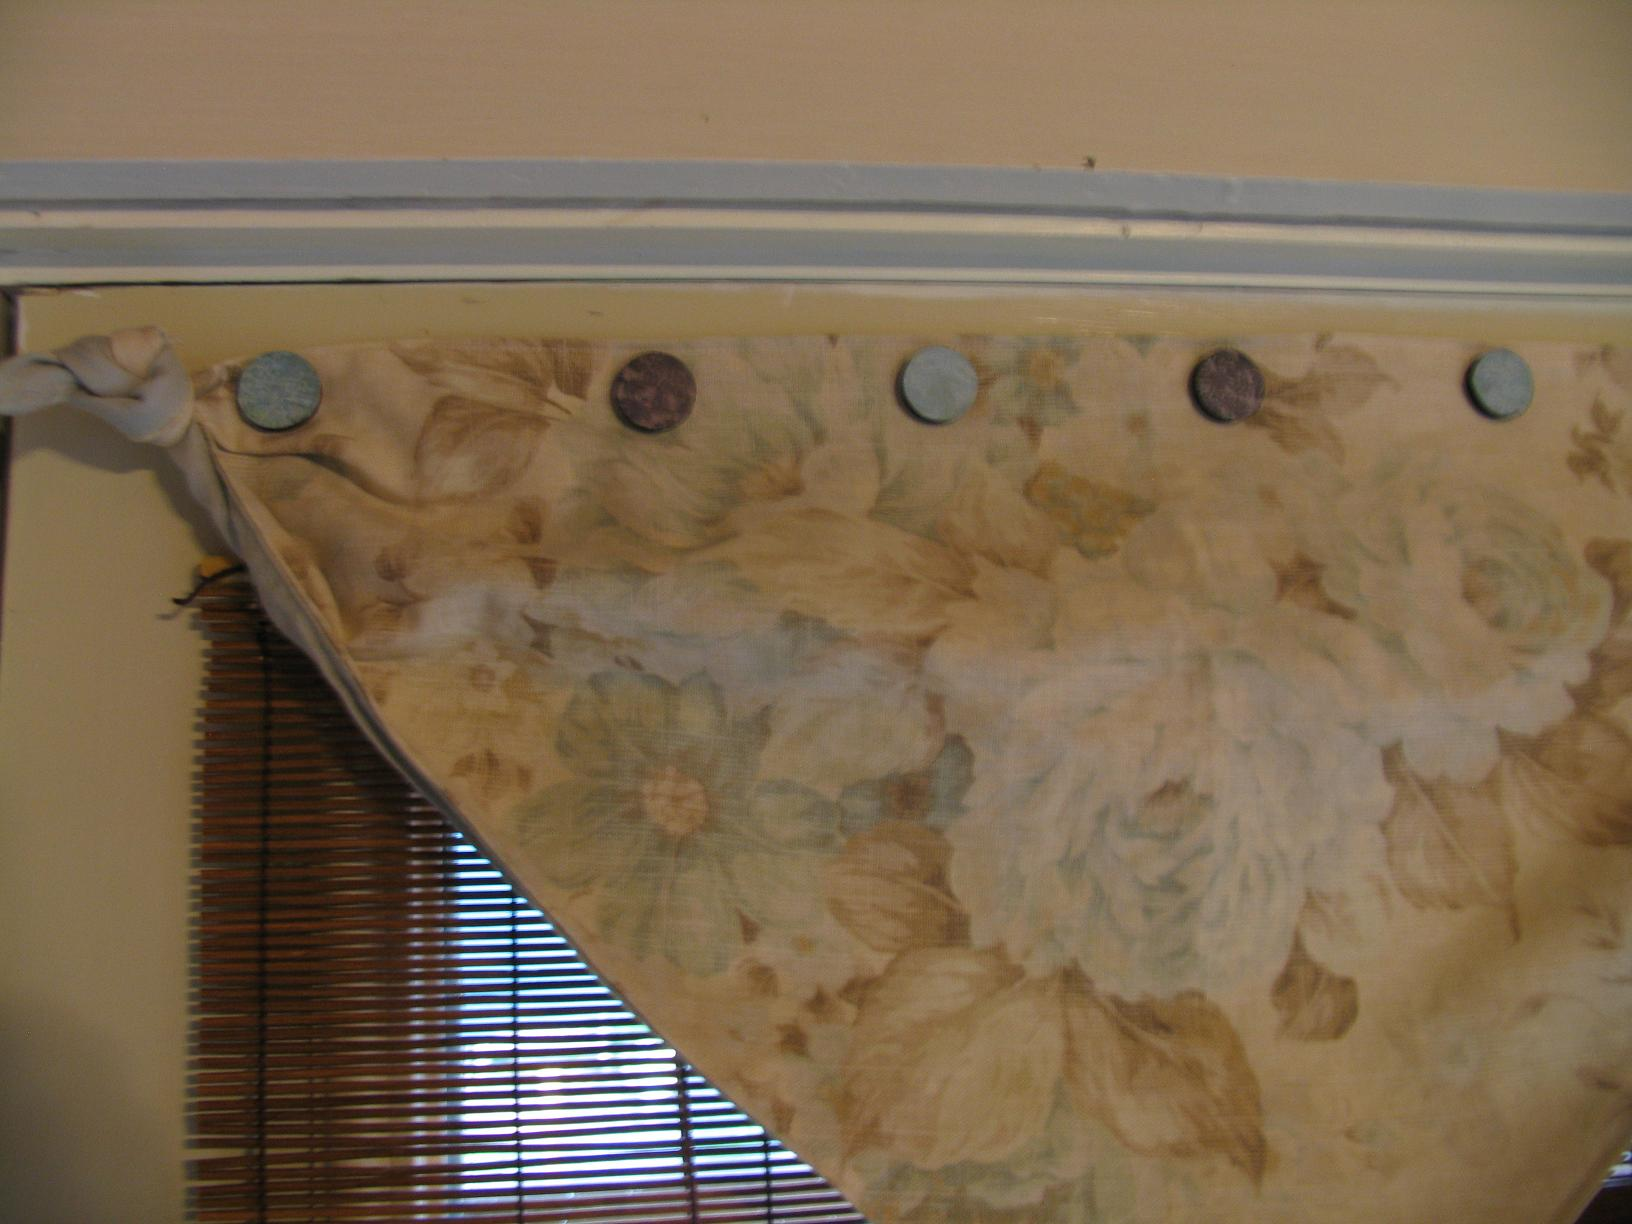 Magnetic Buttons For Hanging Curtains On Metal Doors